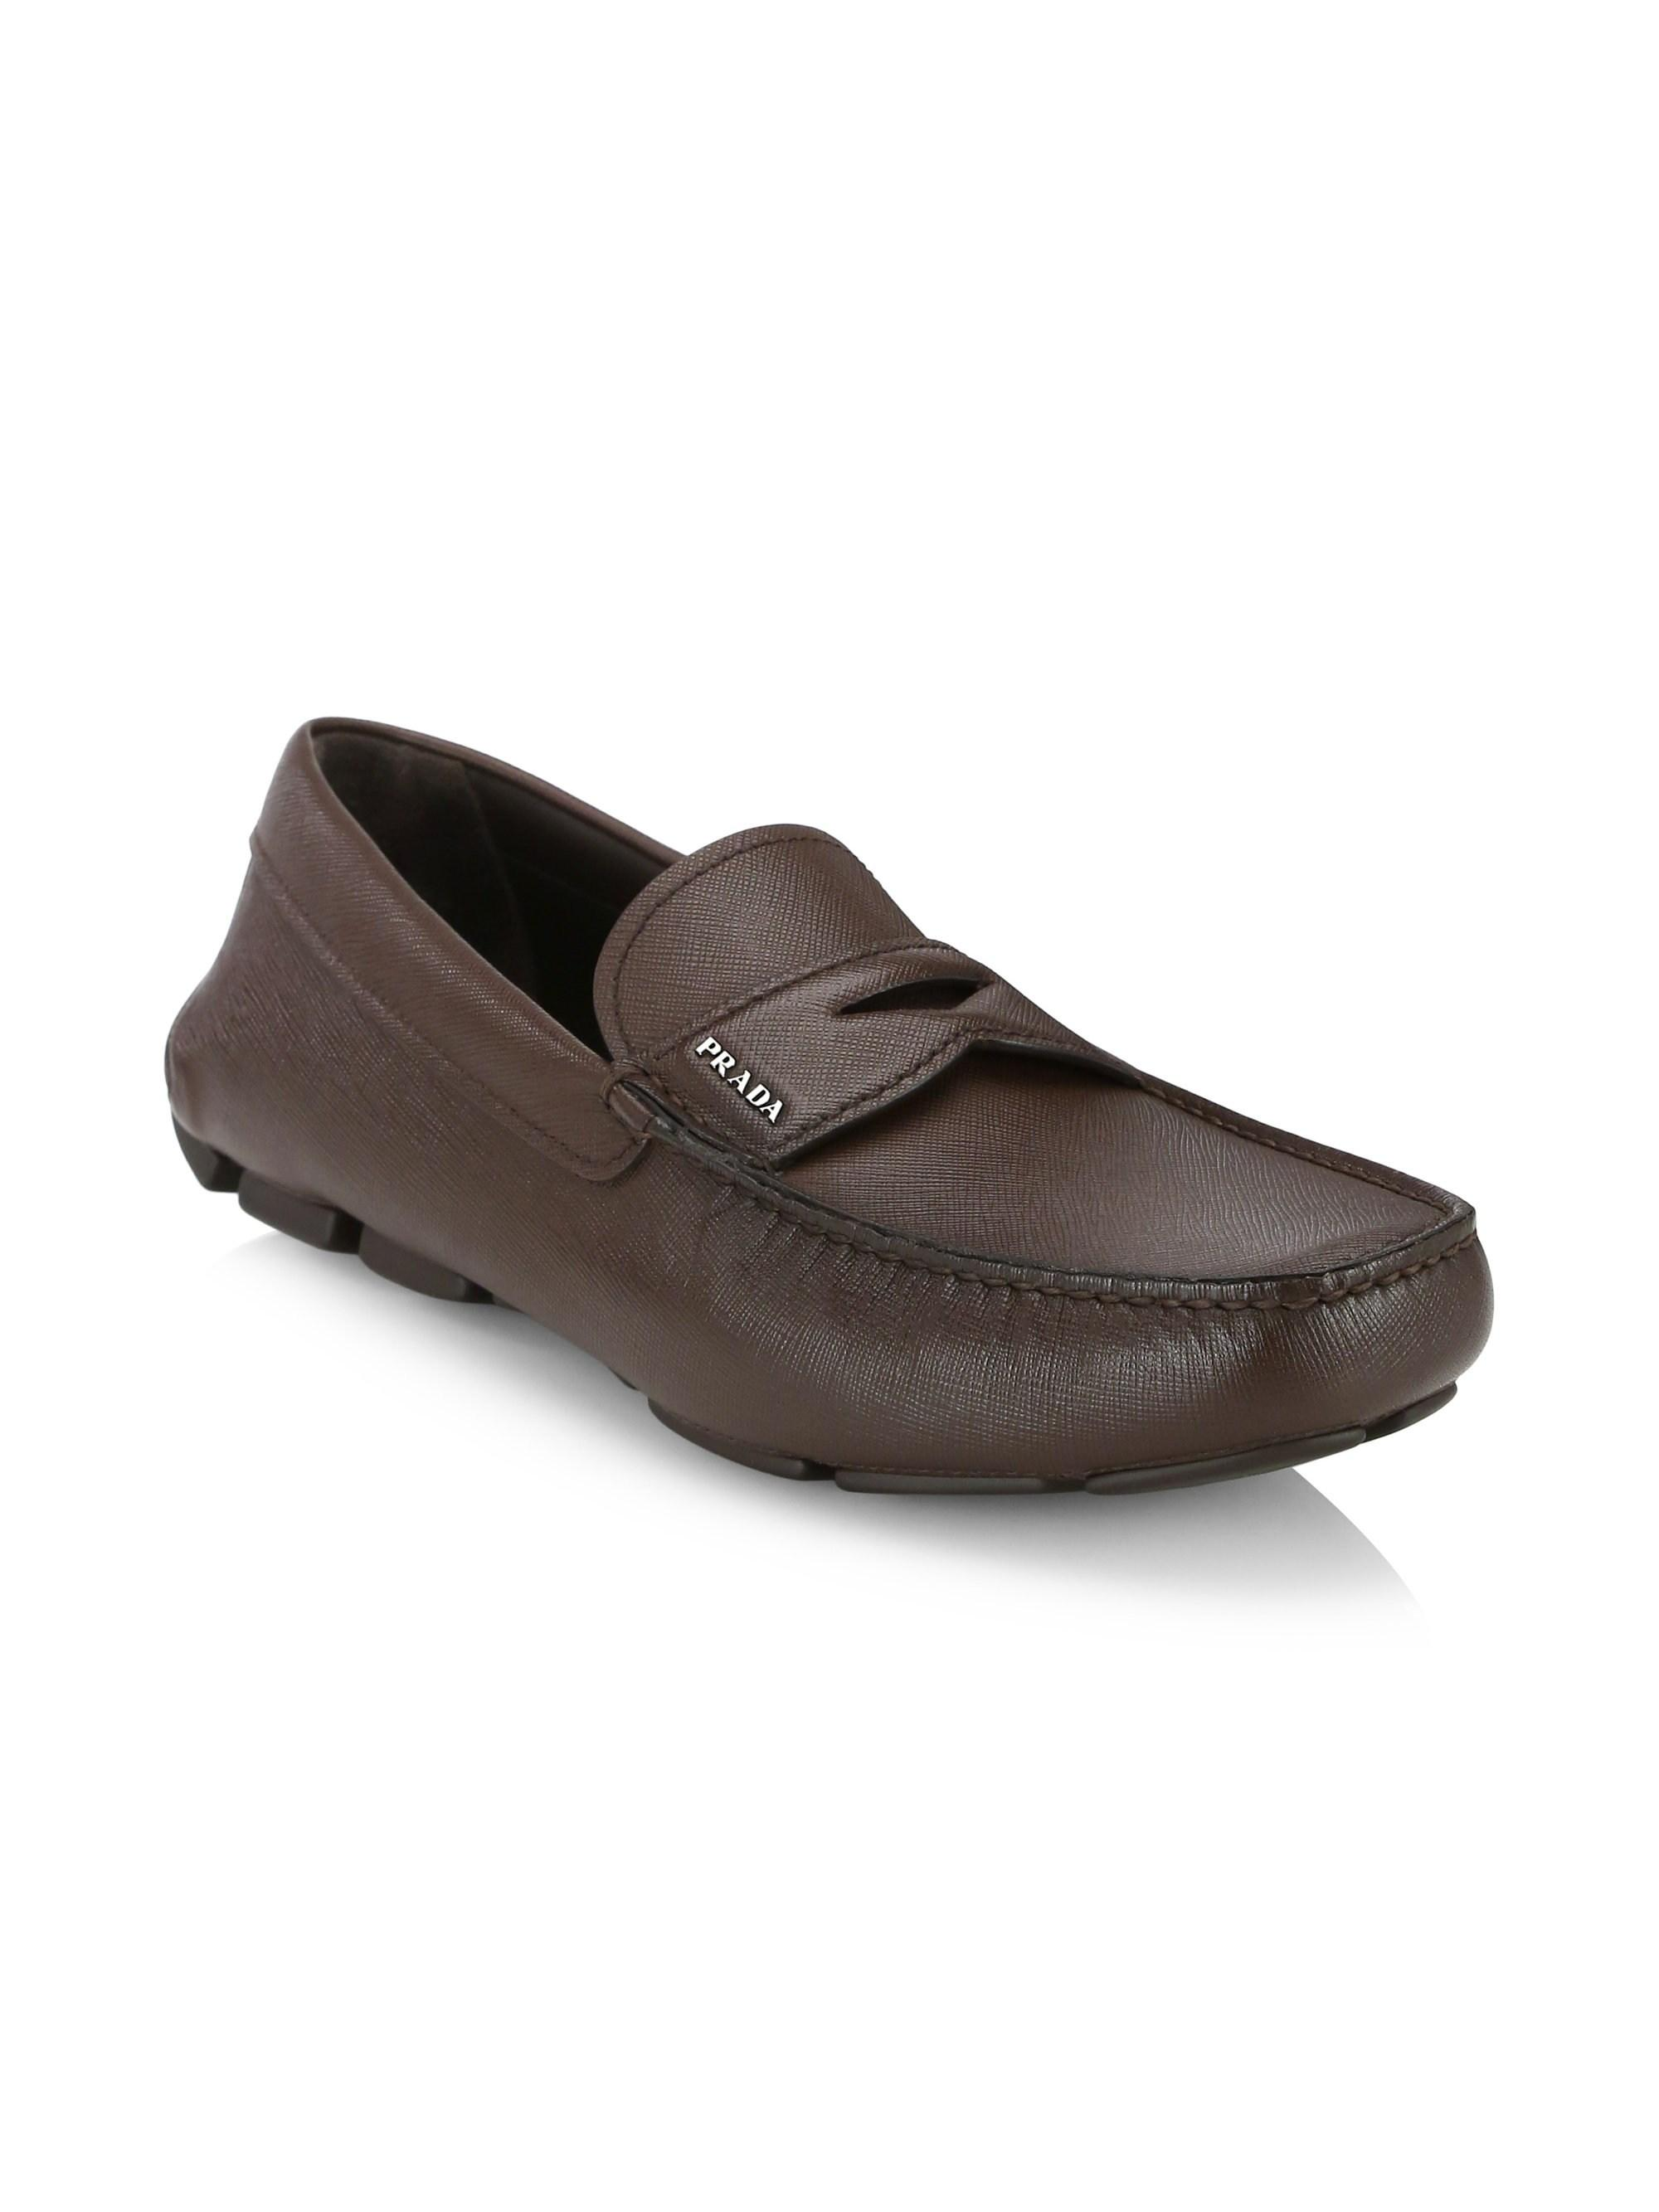 962dc378650 Lyst - Prada Saffiano Leather Driver Loafers in Brown for Men